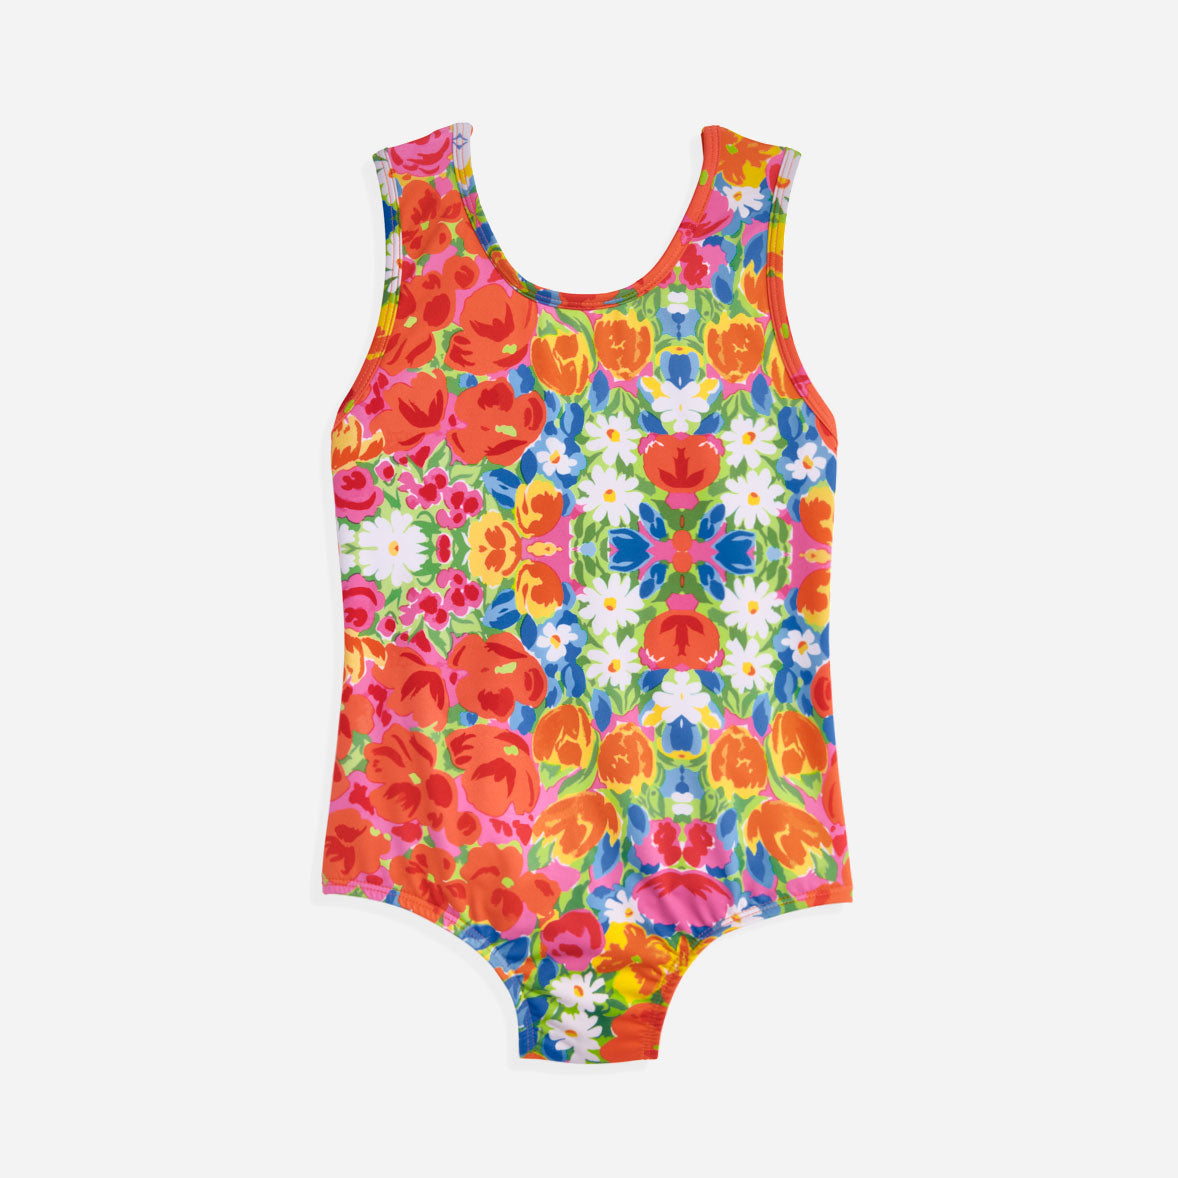 bella bliss x FV Sabrina Bathing Suit Bright Floral